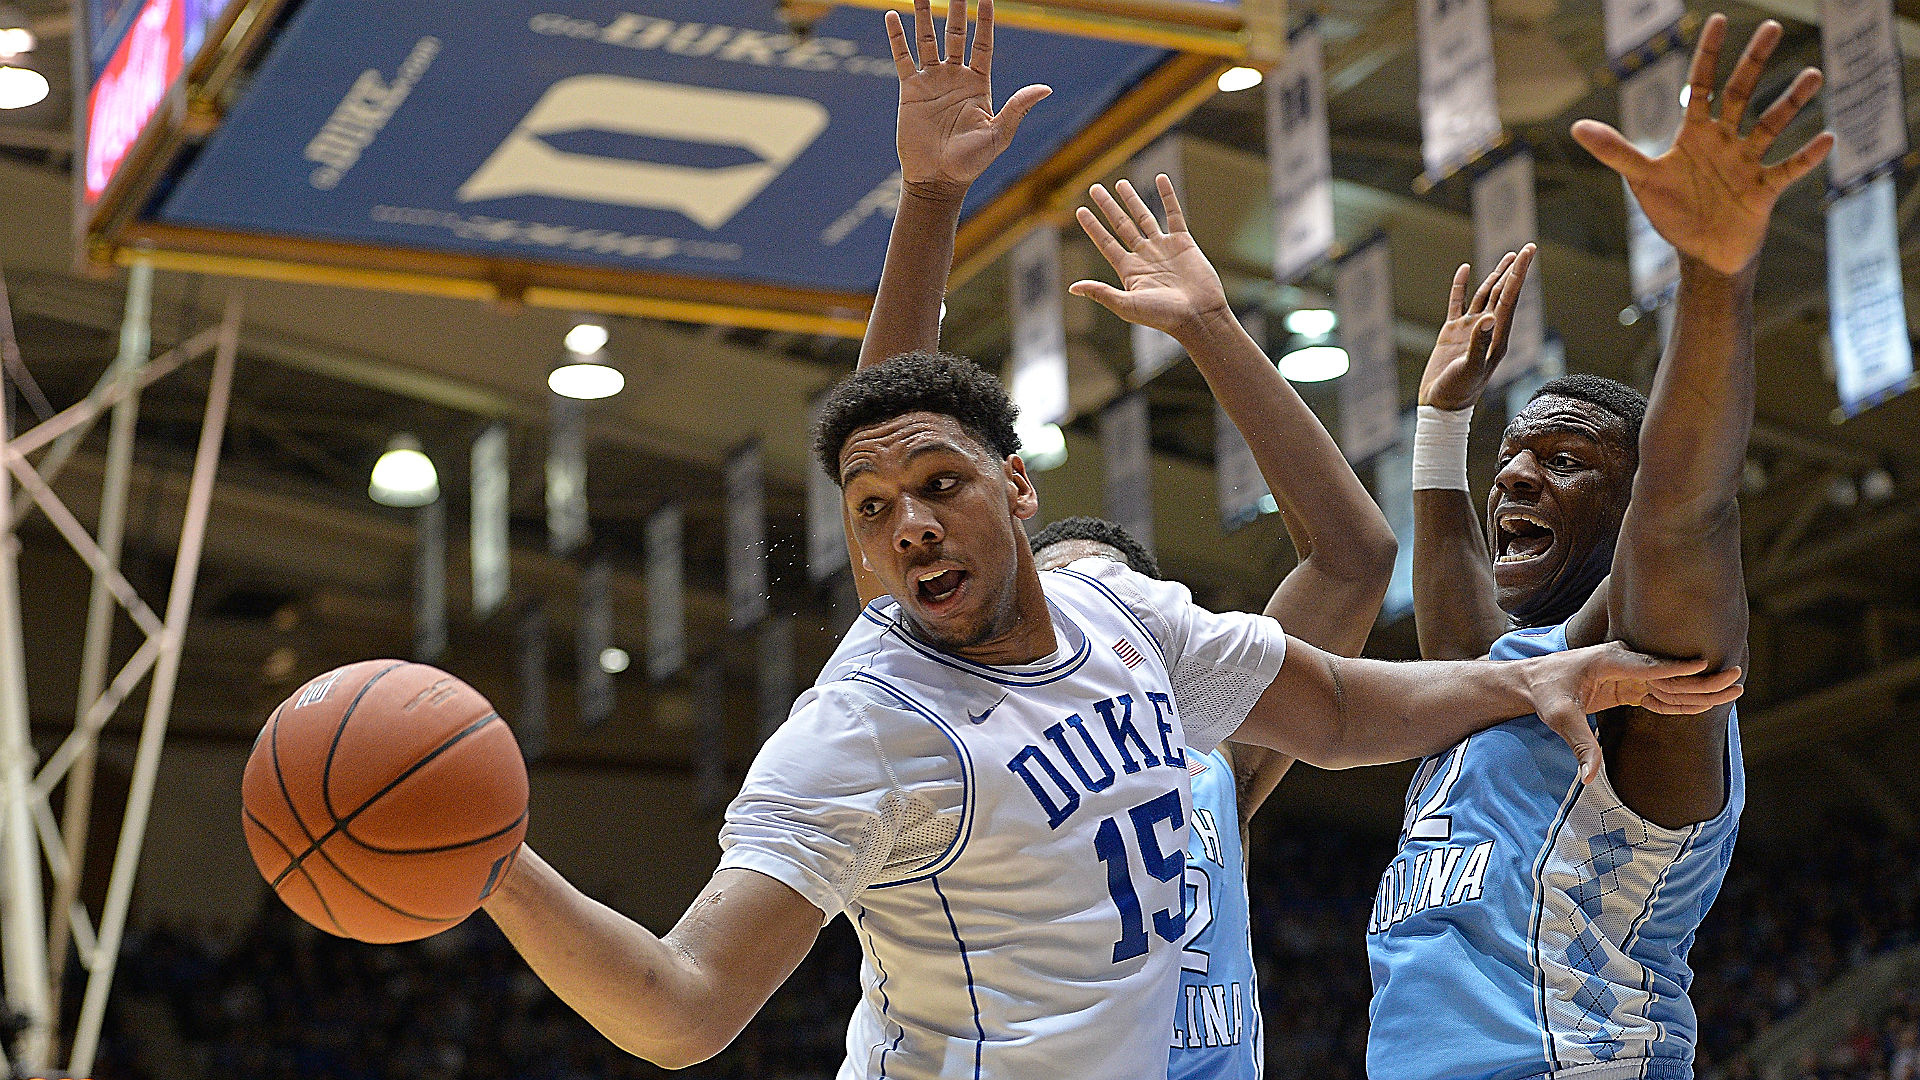 Duke vs. North Carolina betting lines and picks – How much really separates these teams?